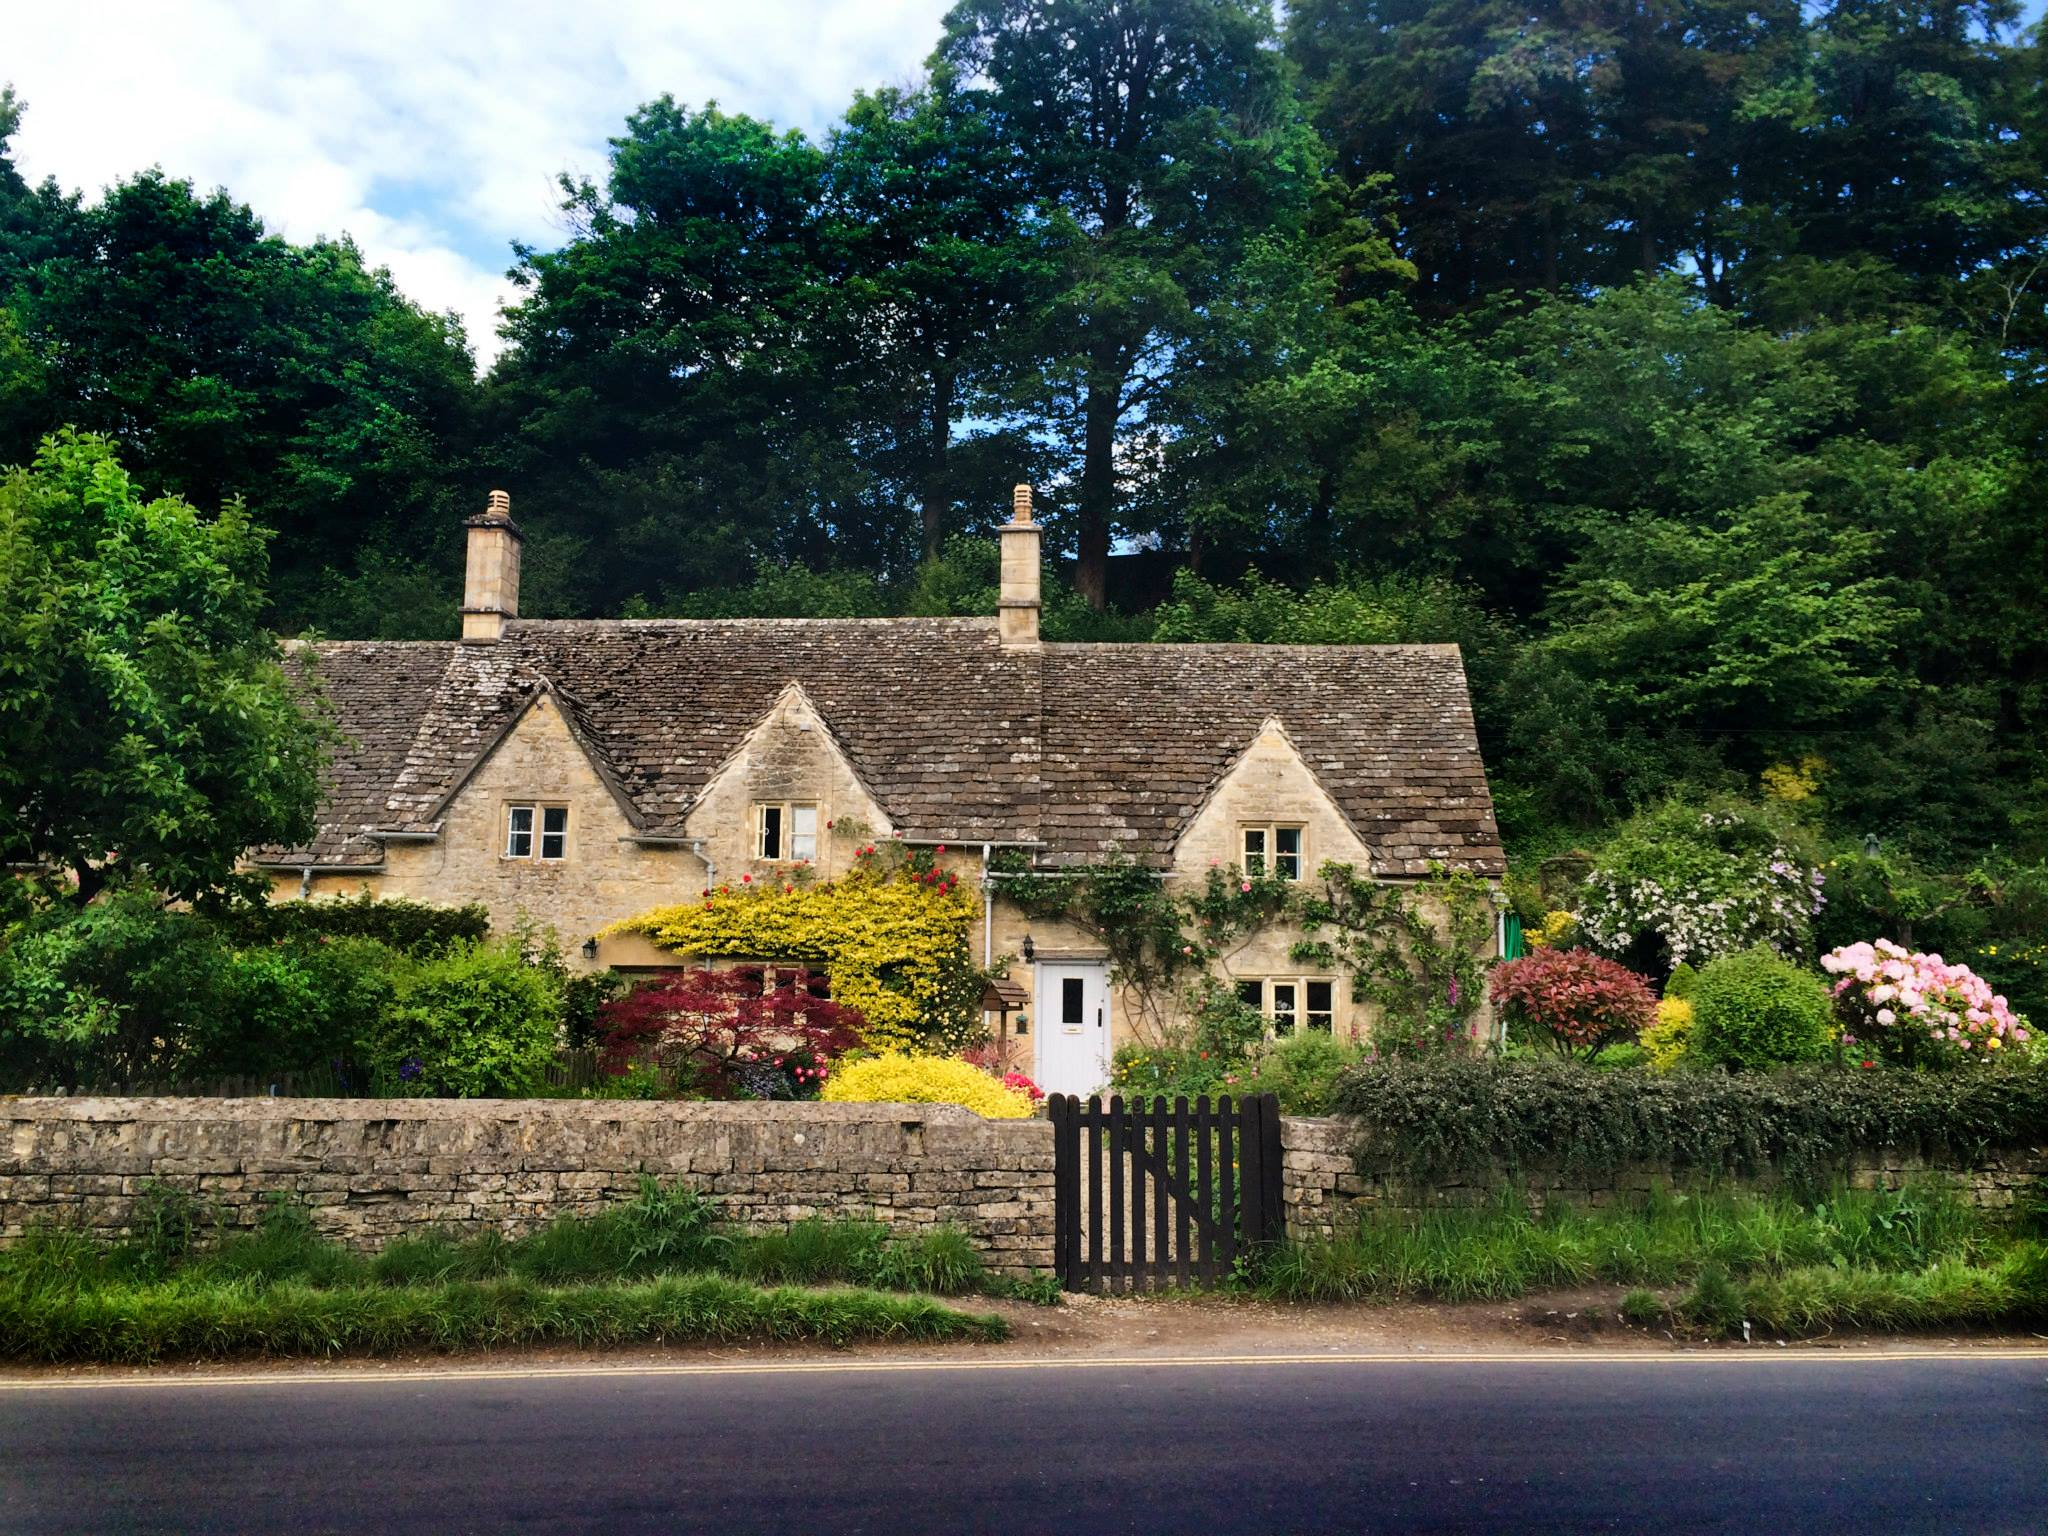 iphone-photography-bibury-village-uk